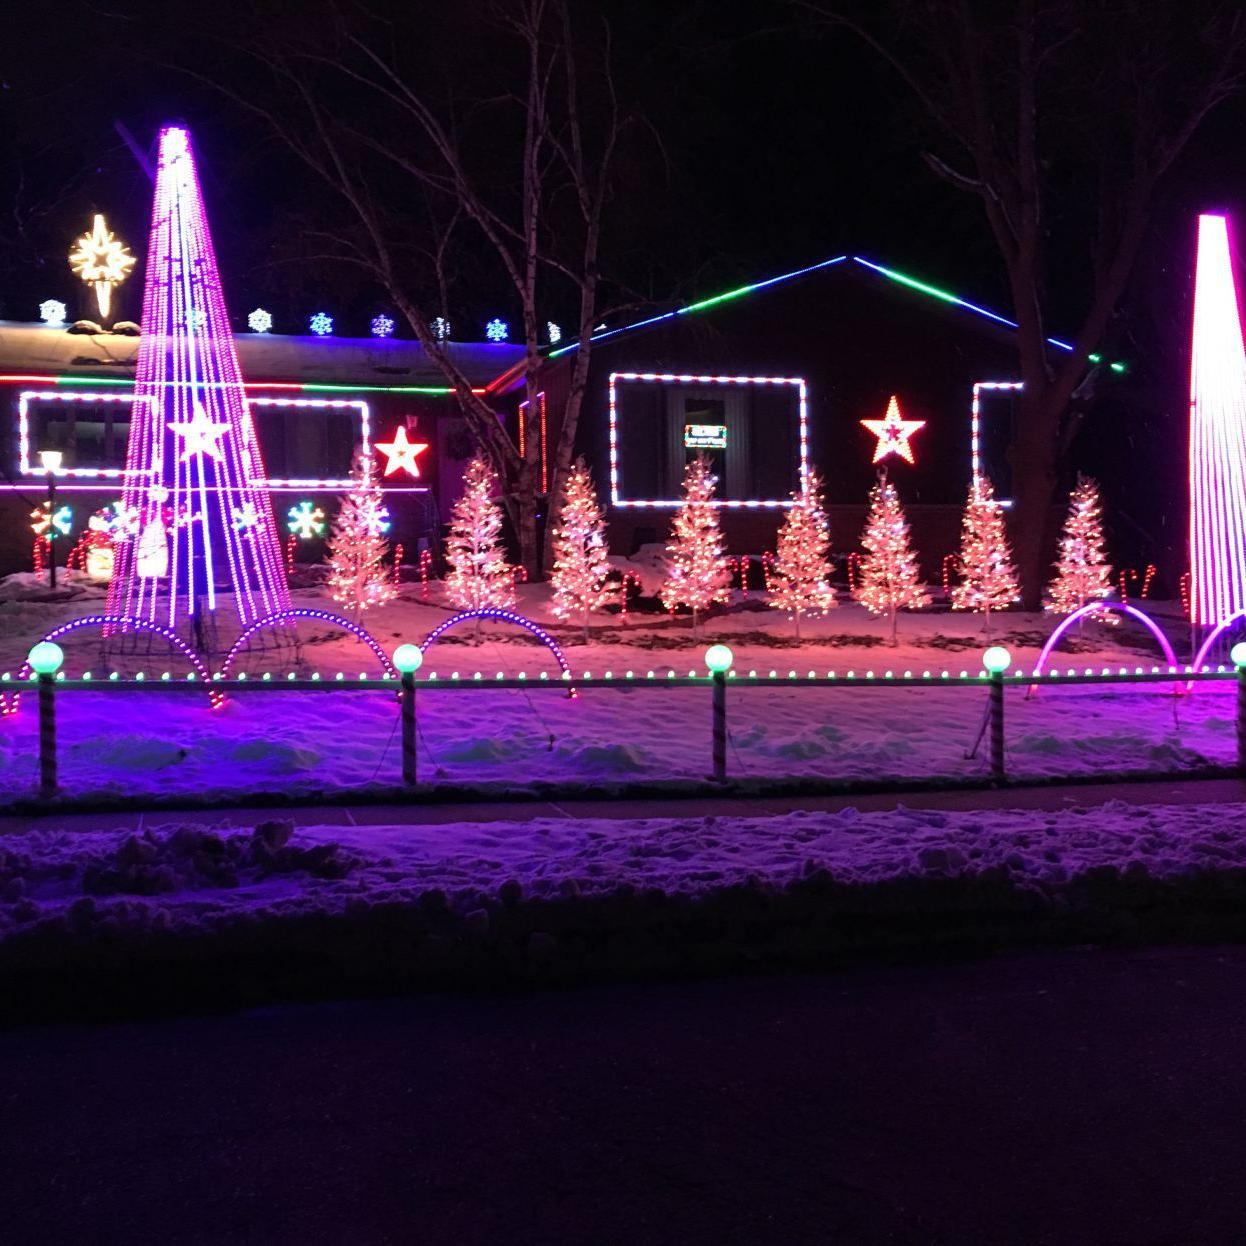 Christmas Lights Madison Wi 2020 Christmas light tourists don't want to miss Colony Drive display